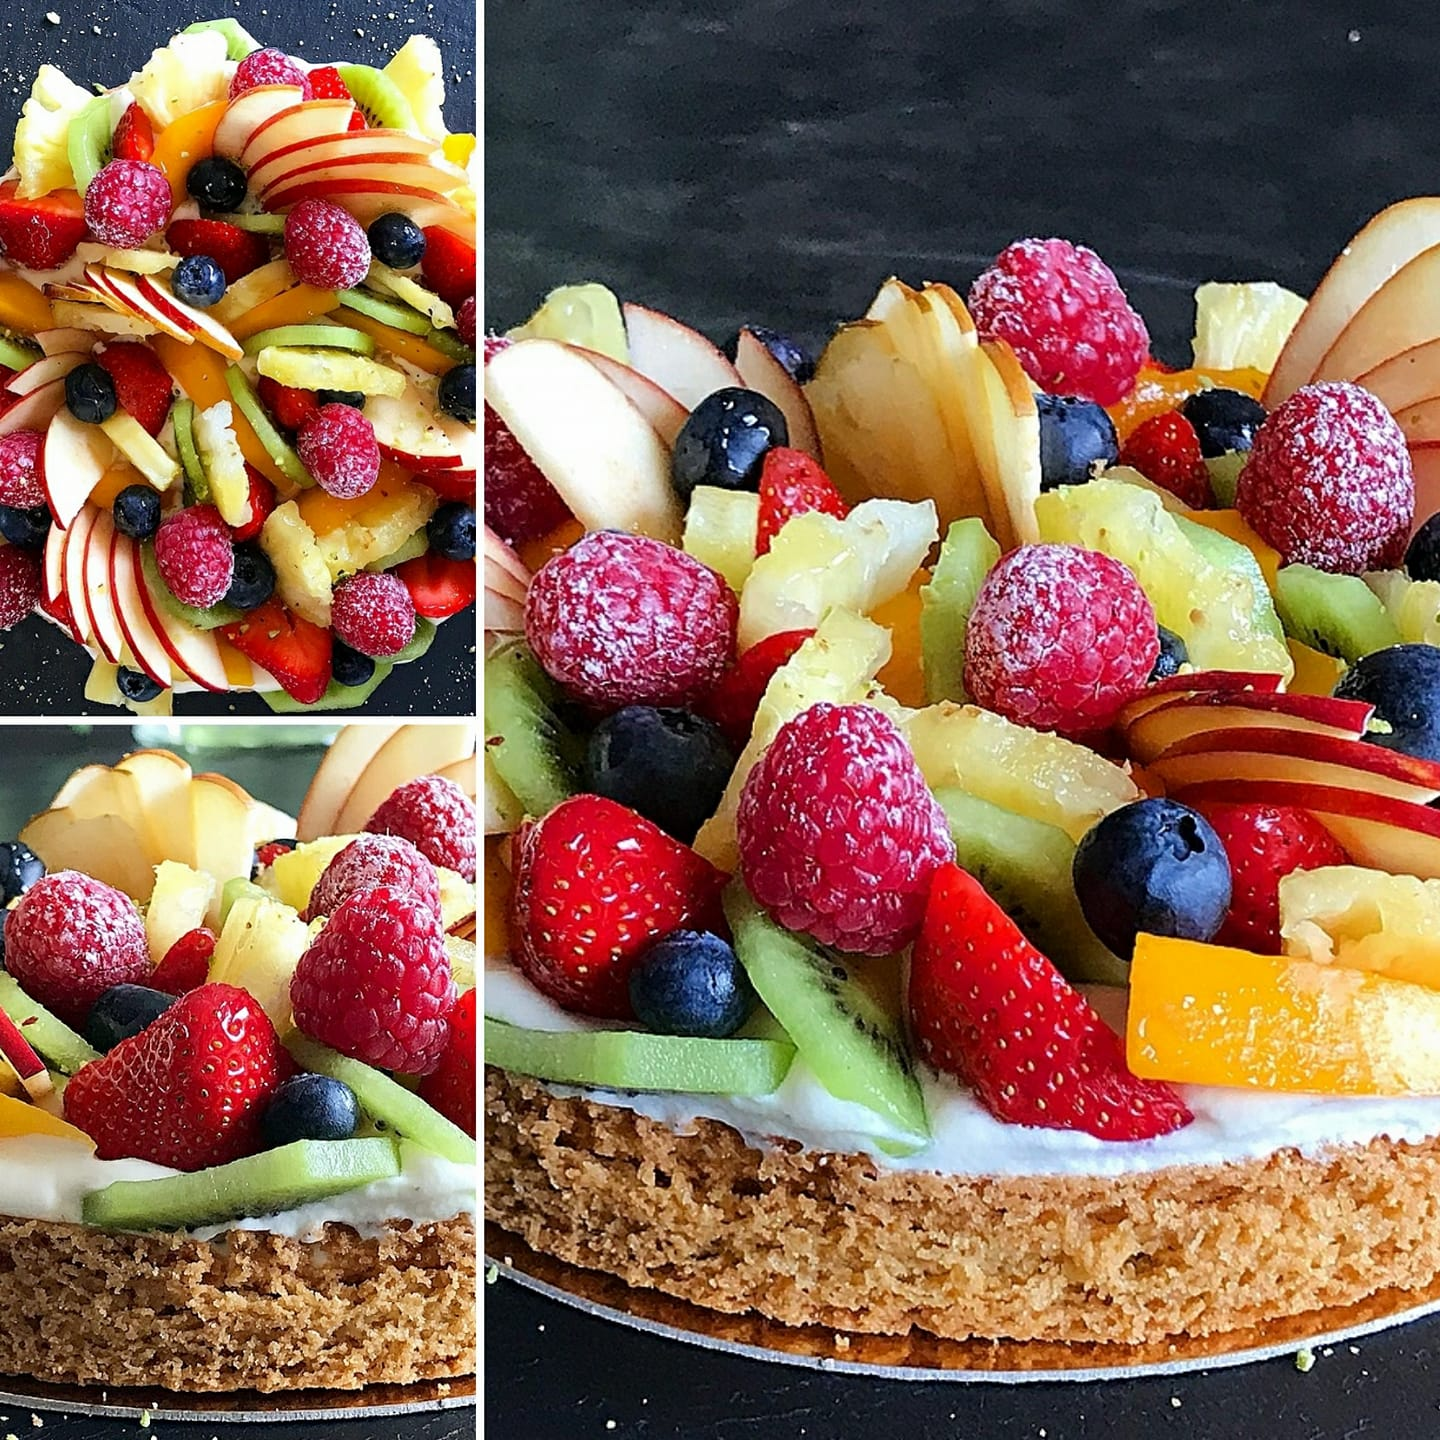 Tarte aux fruits by JHD